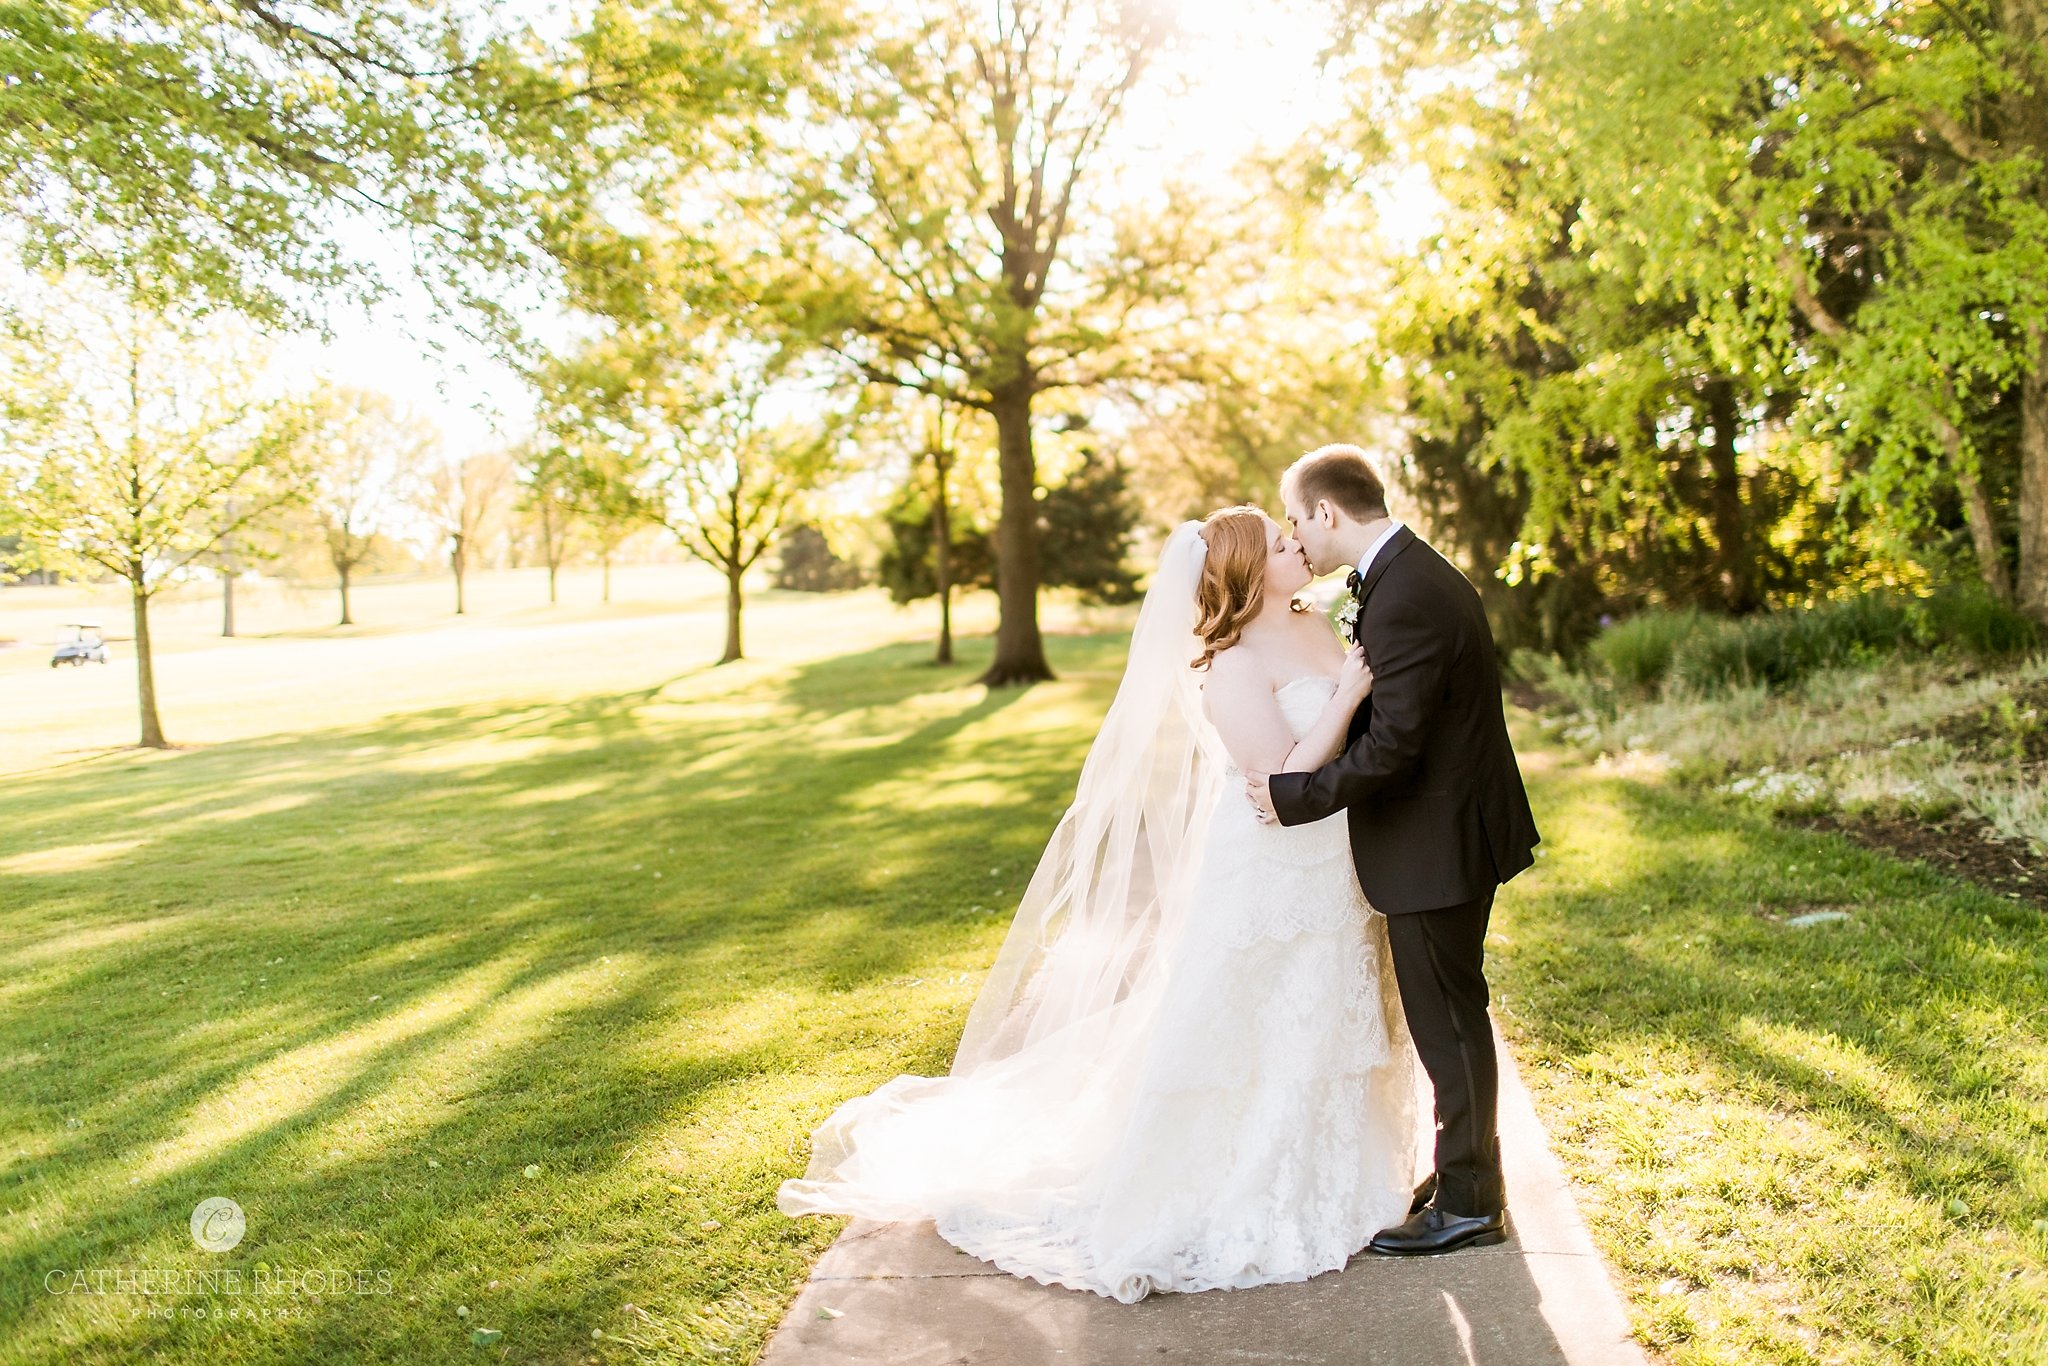 CountryClubofMissouriWedding_ChaeleighKevin_CatherineRhodesPhotography(3806of5078)-Edit-1.jpg